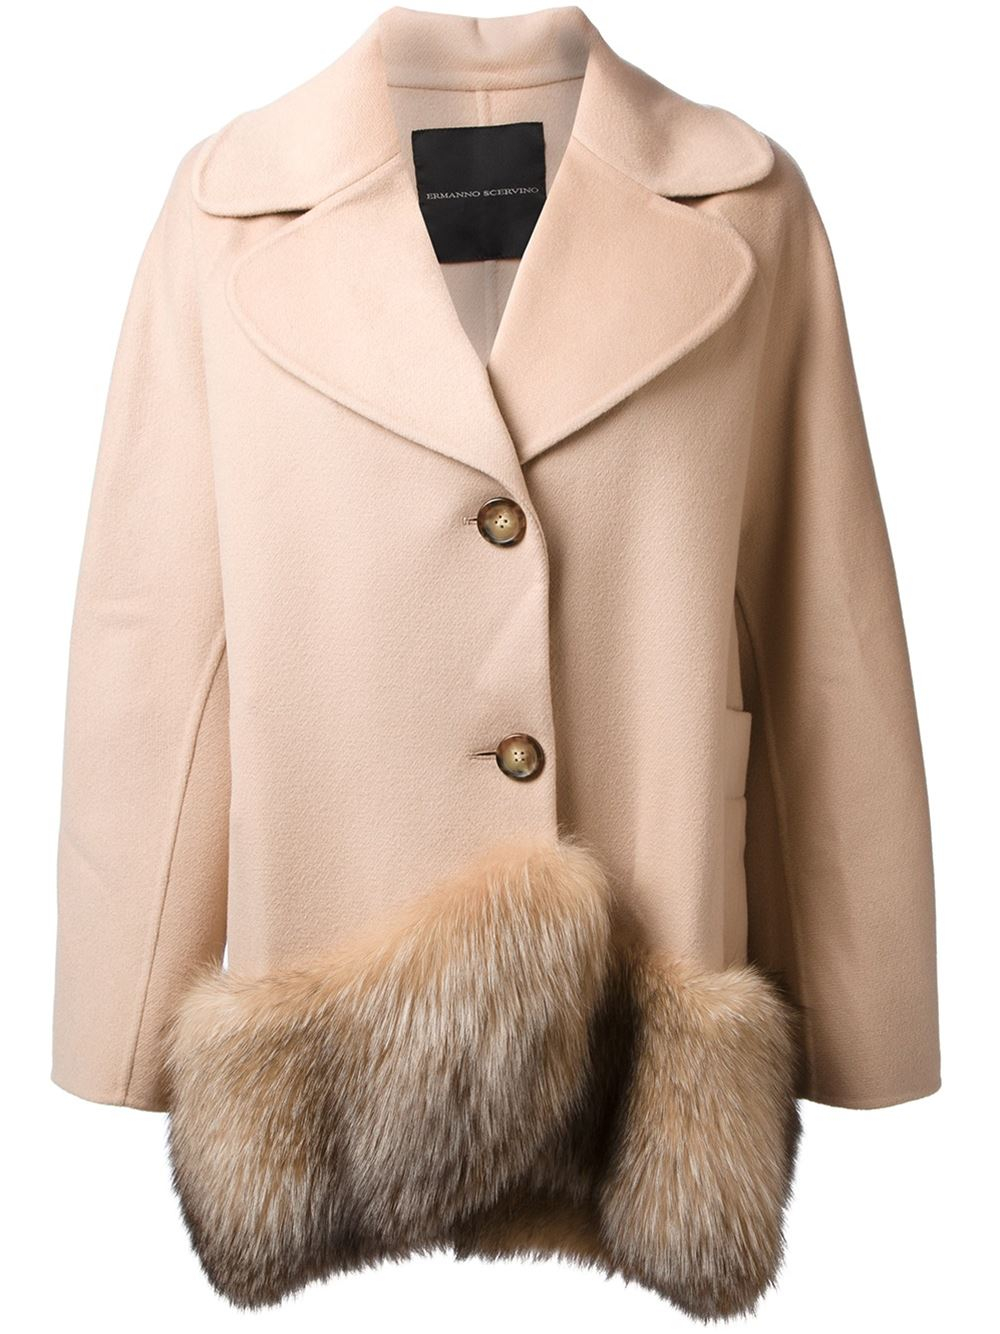 Ermanno scervino Fox Fur Trimmed Coat in Natural | Lyst